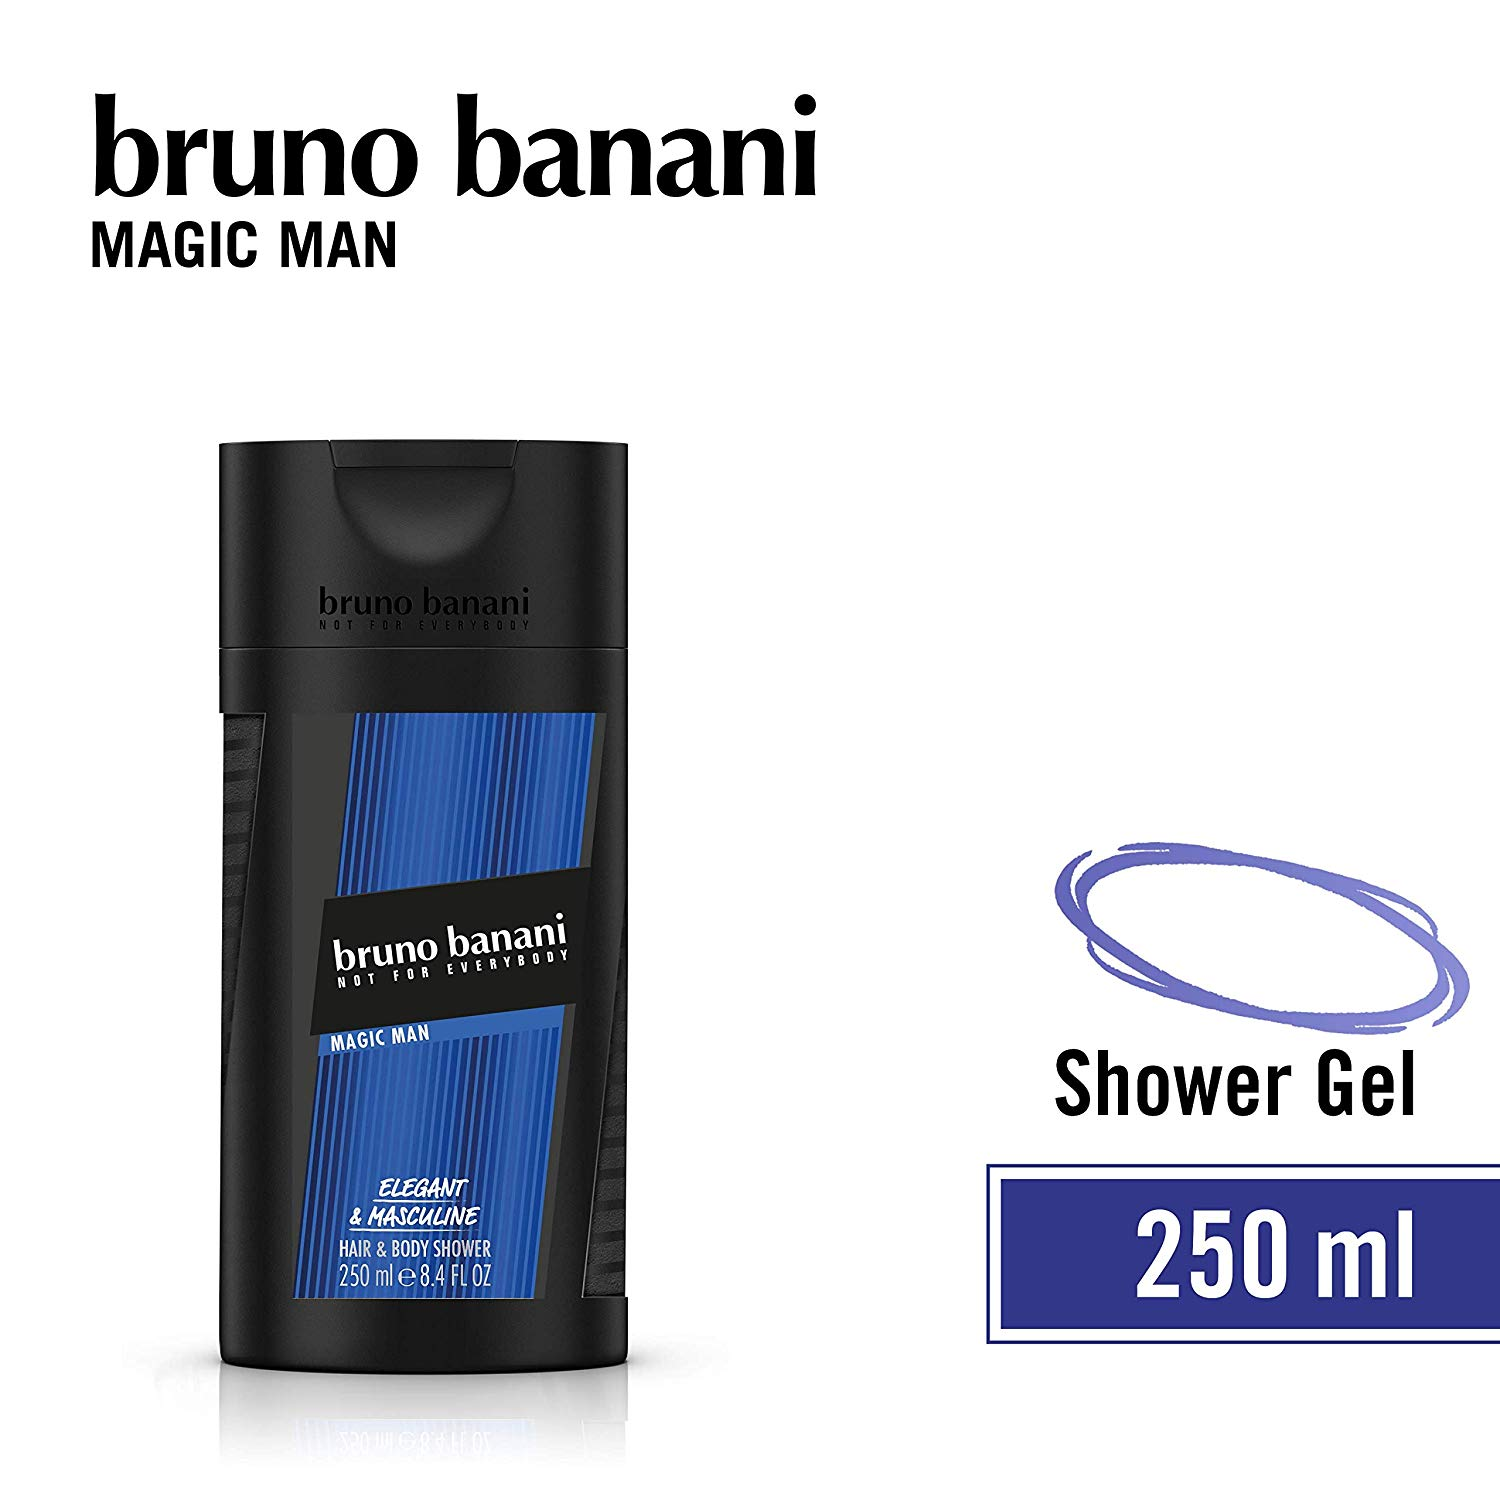 Bruno Banani Magic Man - sprchový gel 250 ml